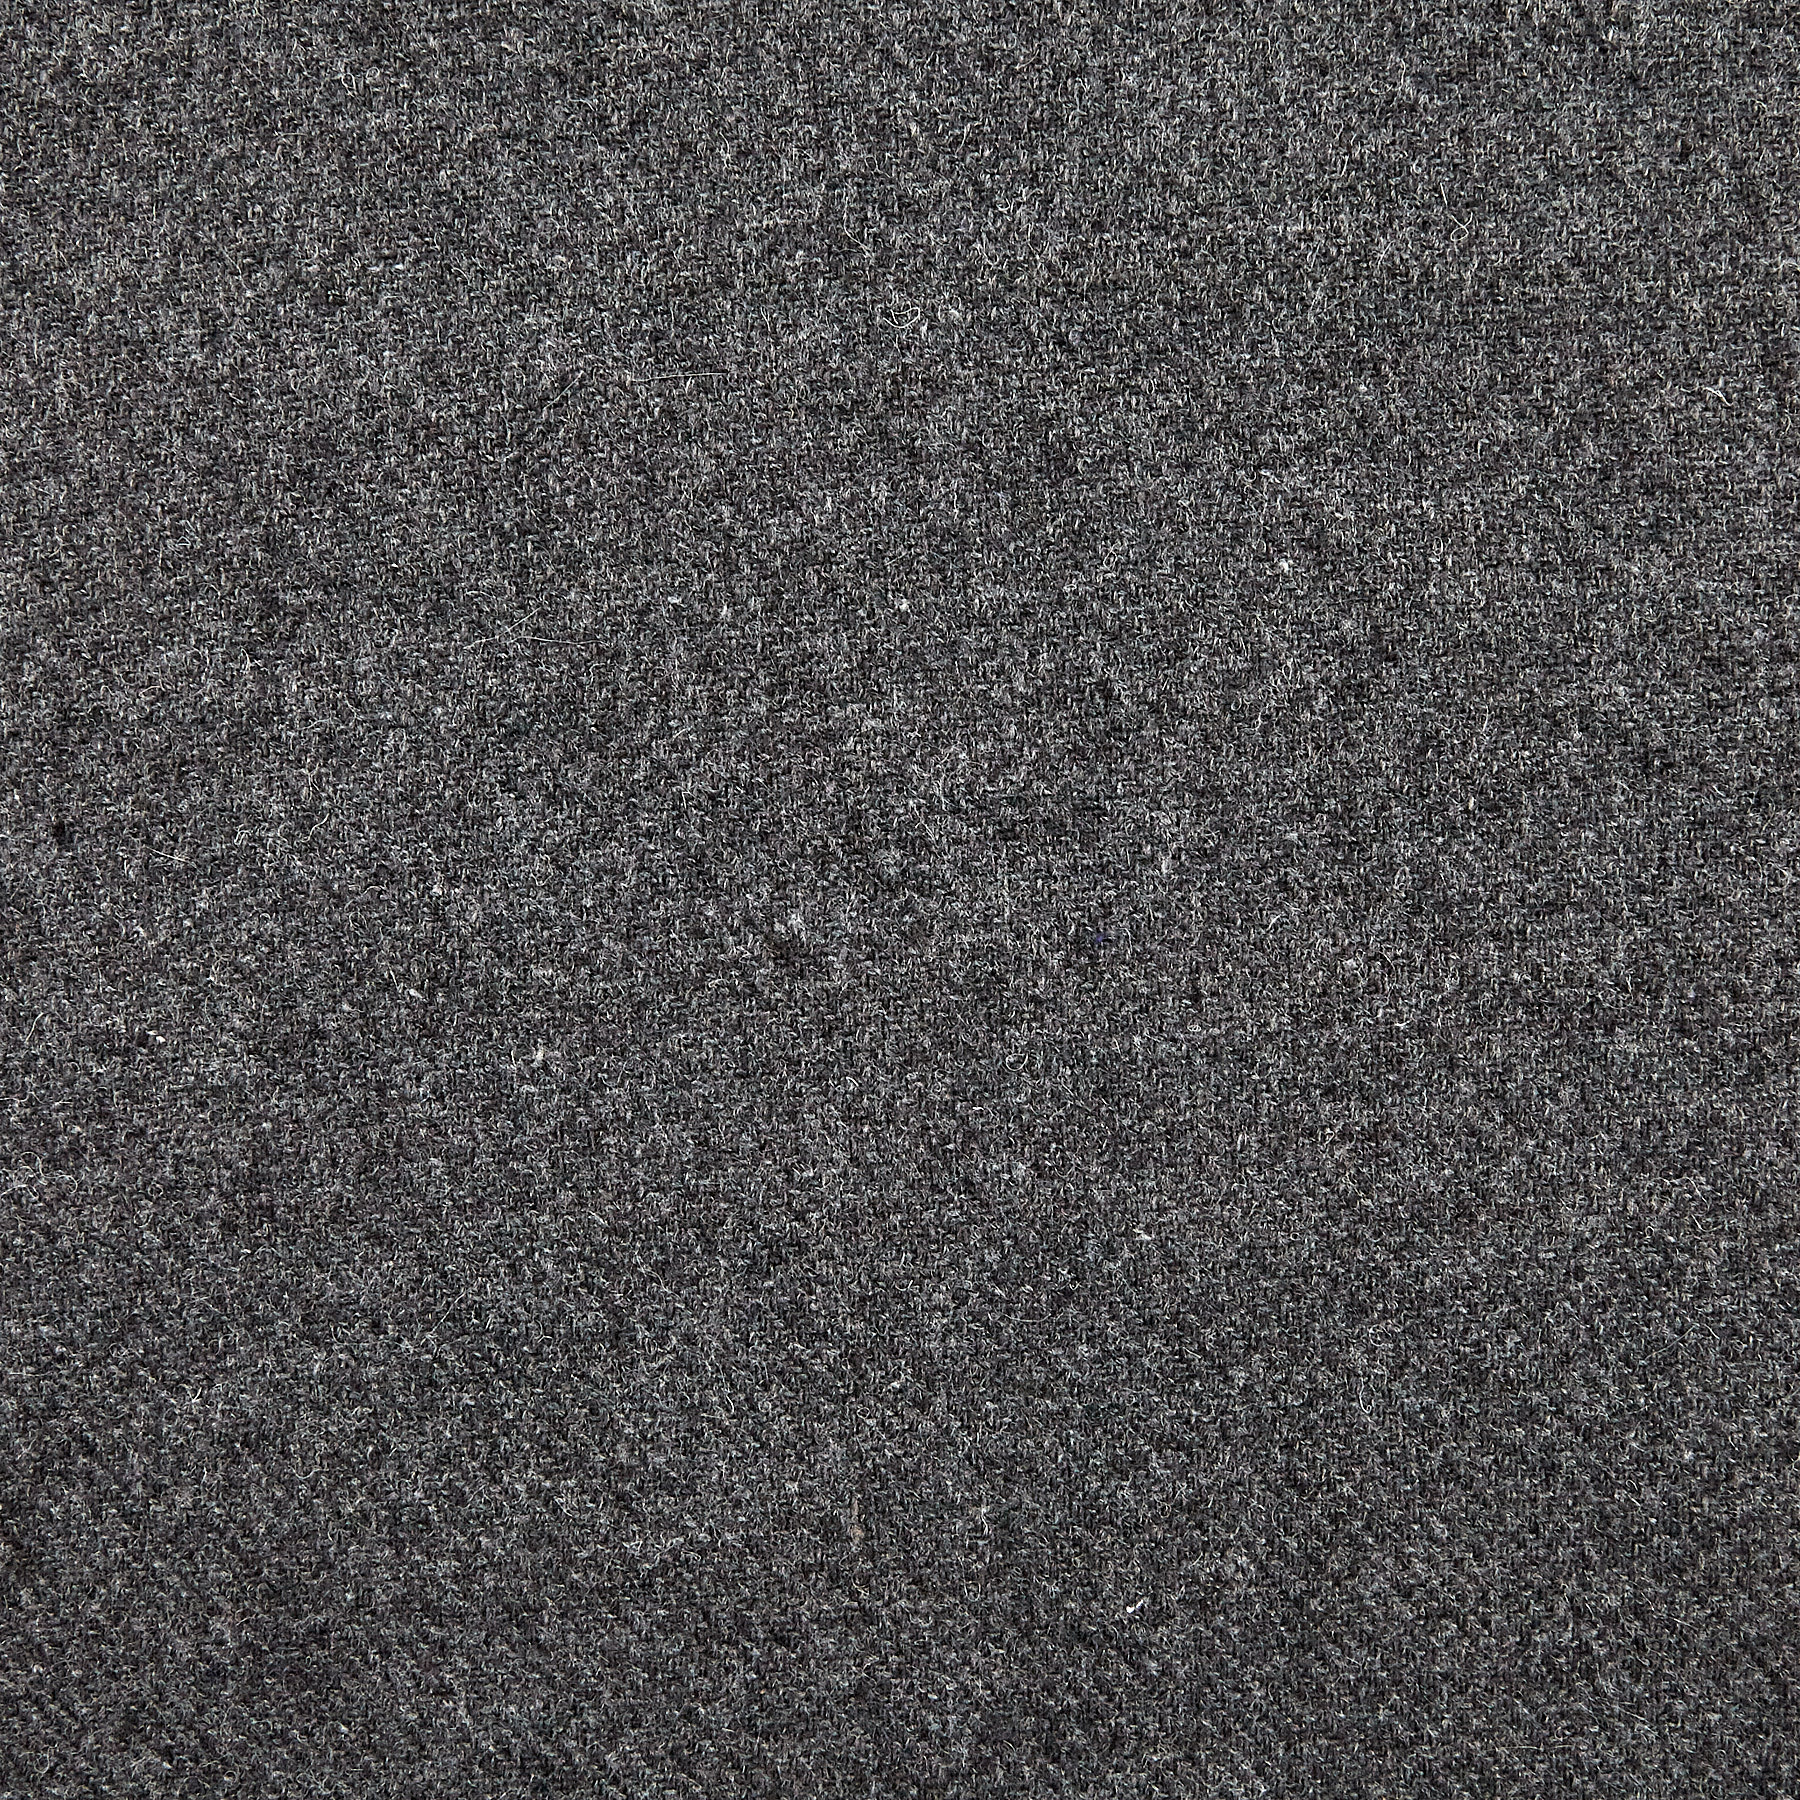 Washable Wool Solid Medium Grey Fabric by Spechler-Vogel in USA